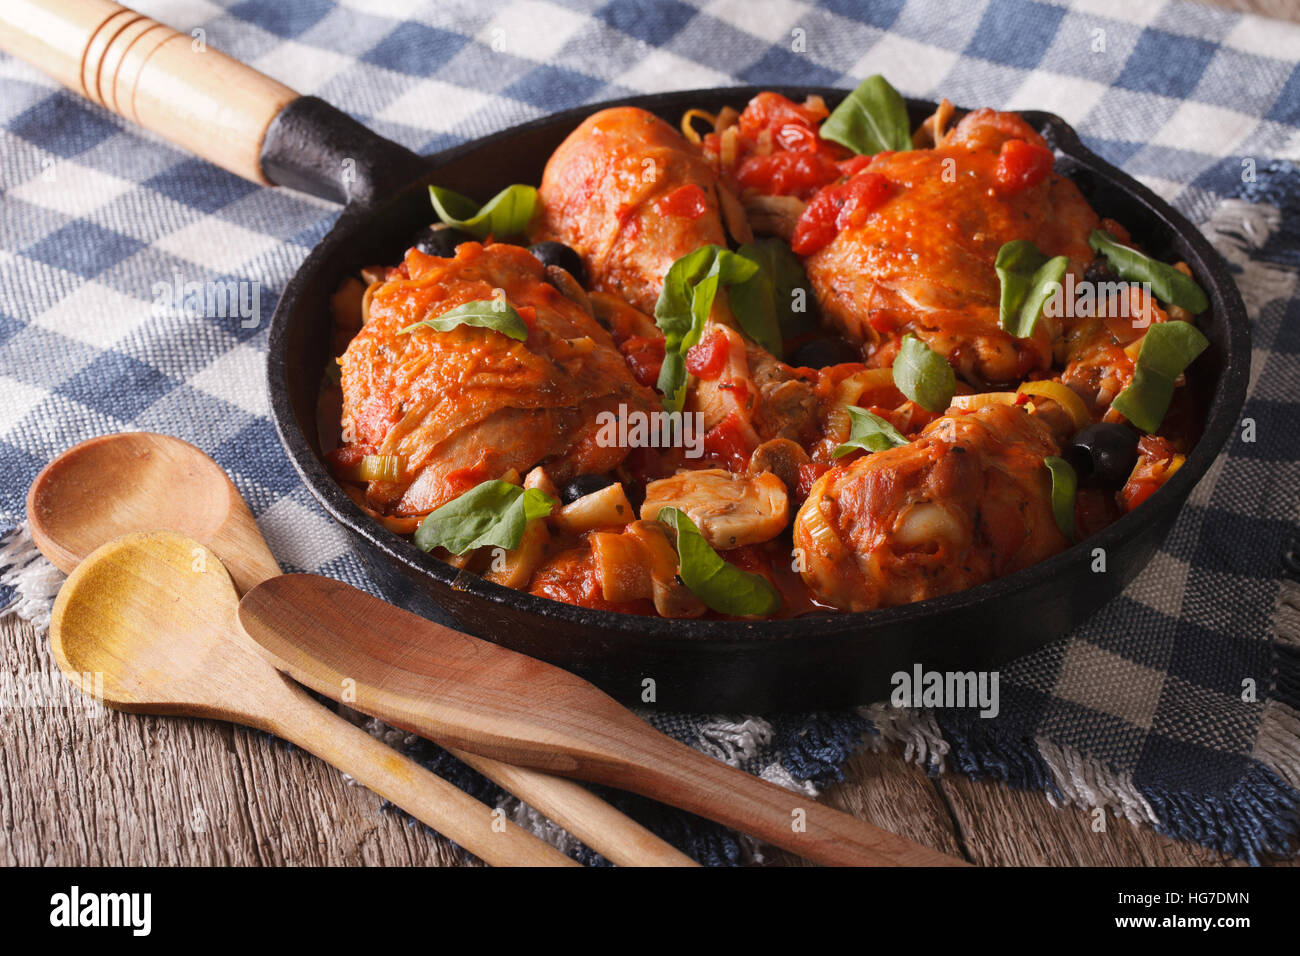 Italian cuisine: Chicken Cacciatori with mushrooms close up in a frying pan. Horizontal - Stock Image